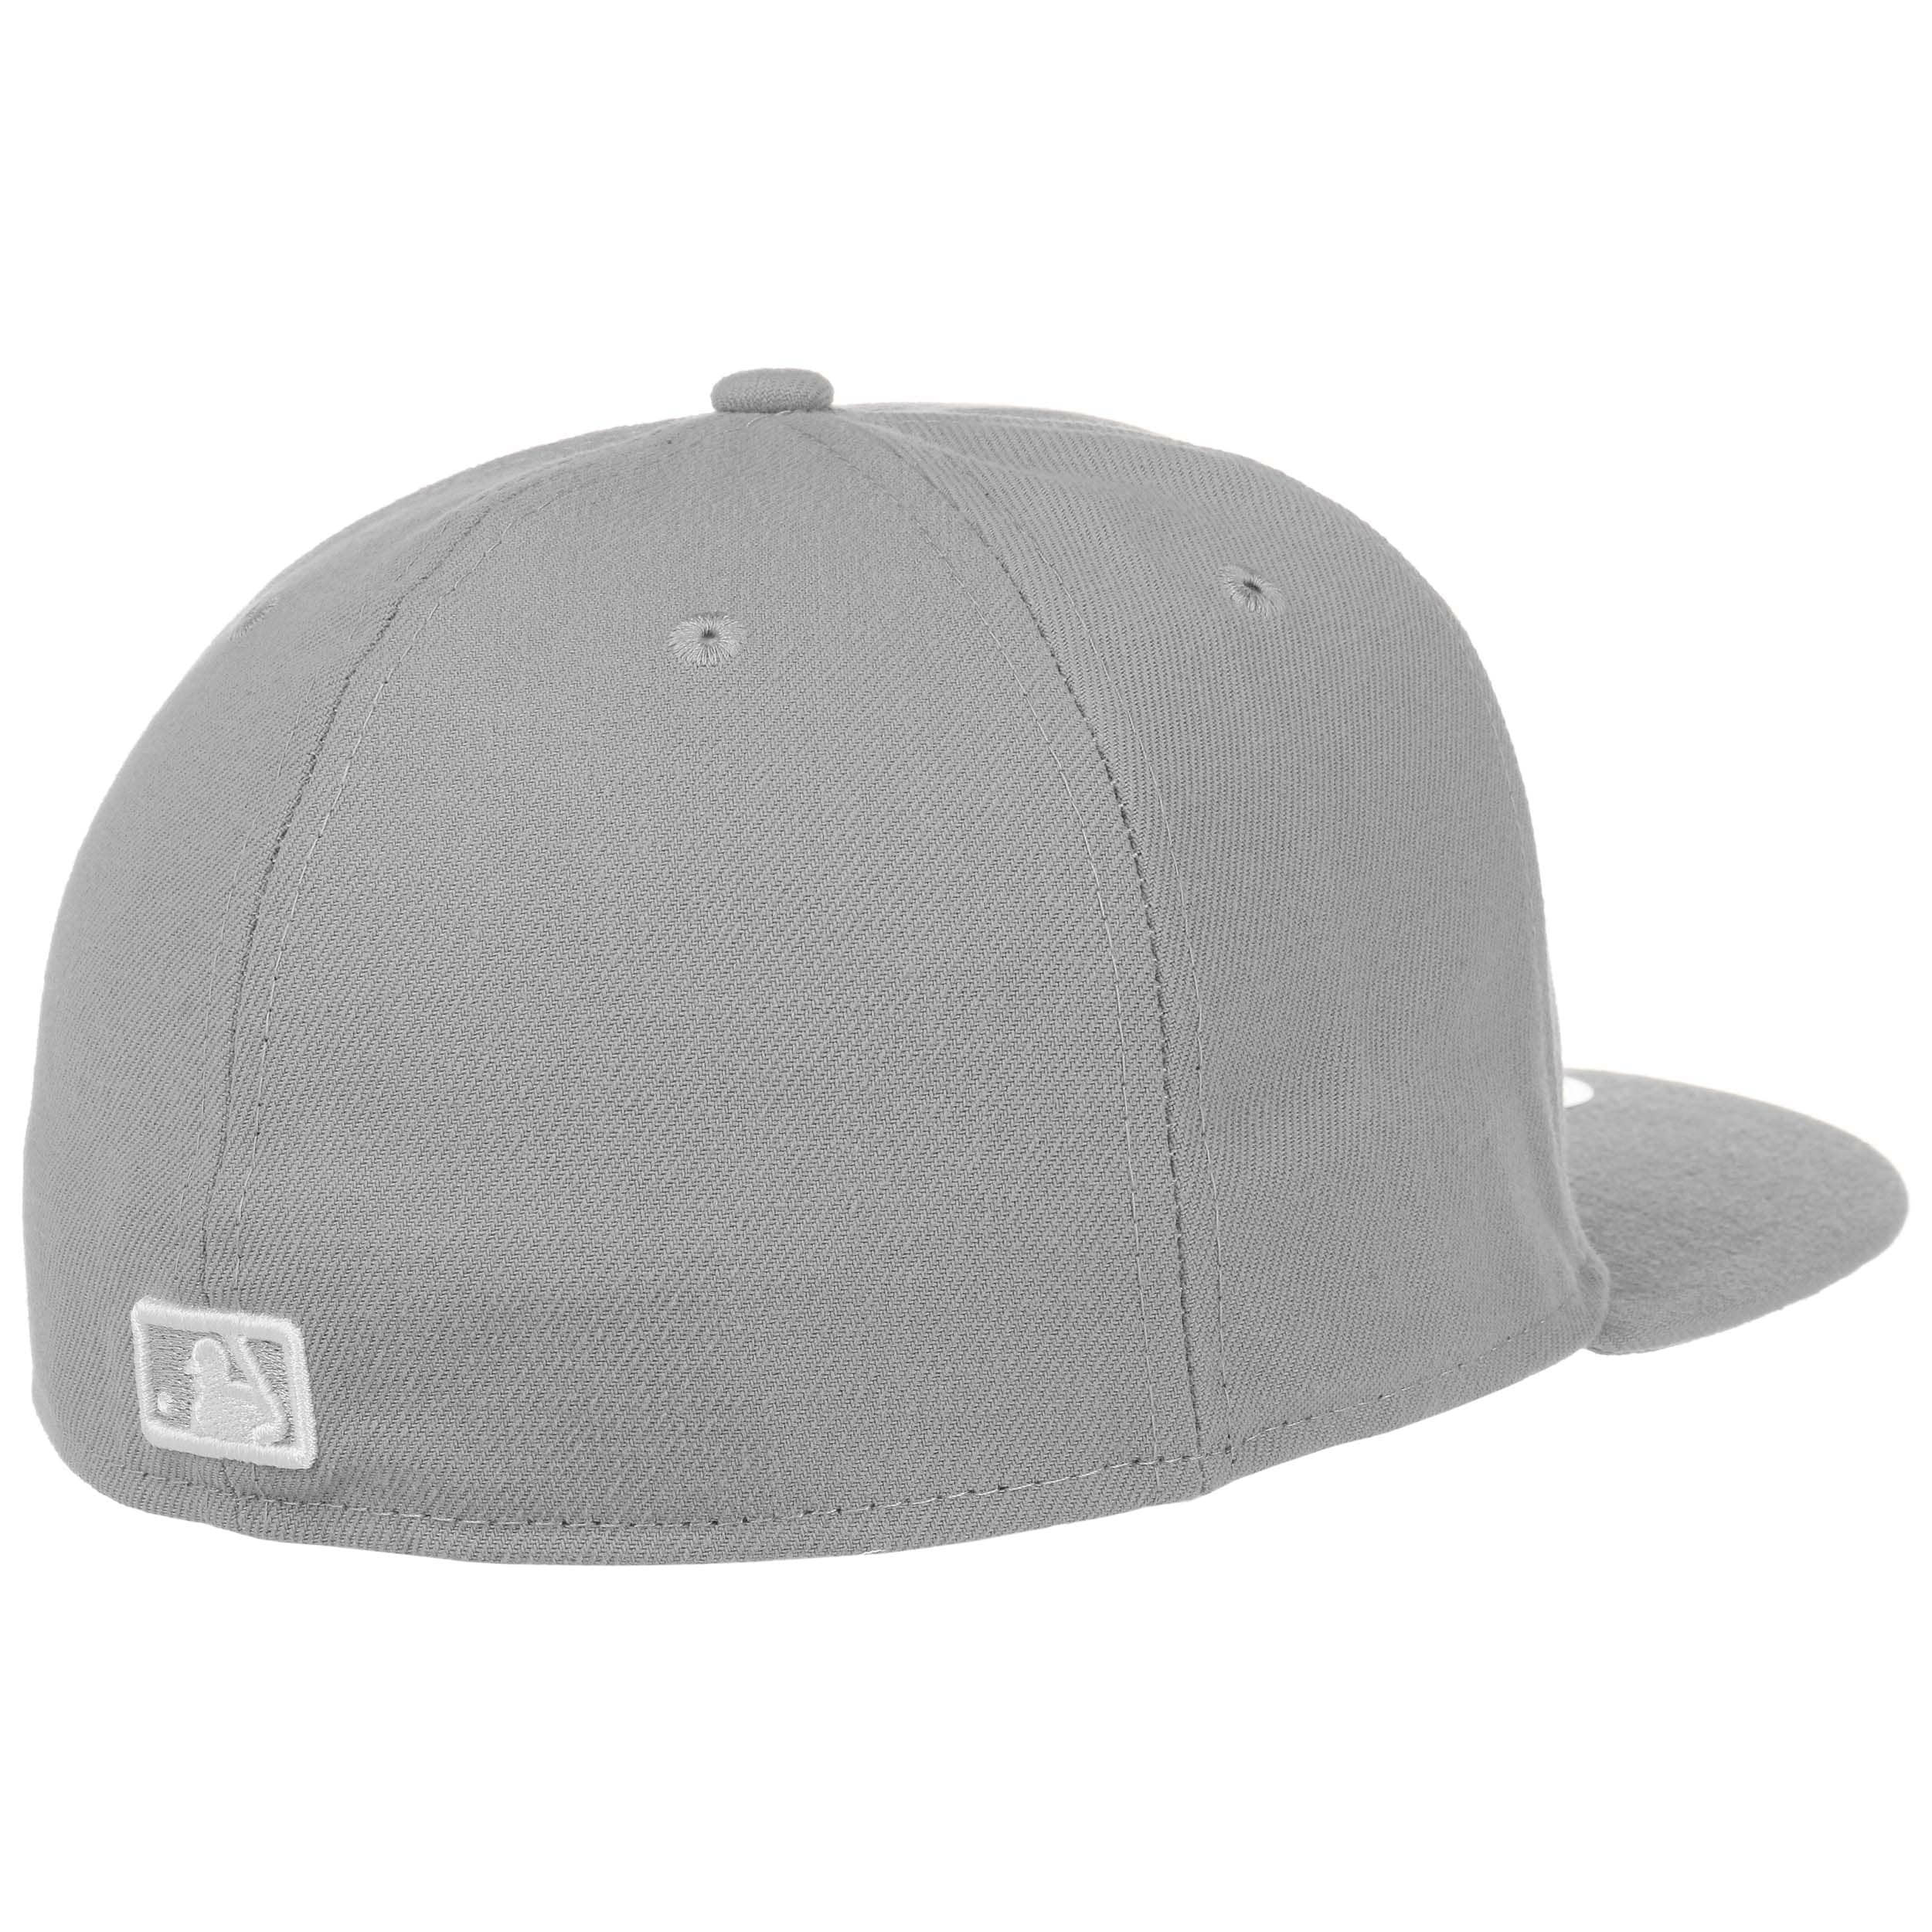 59Fifty Gorra MLB Basic NY by New Era - Gorras - sombreroshop.es 9edefe15cf7